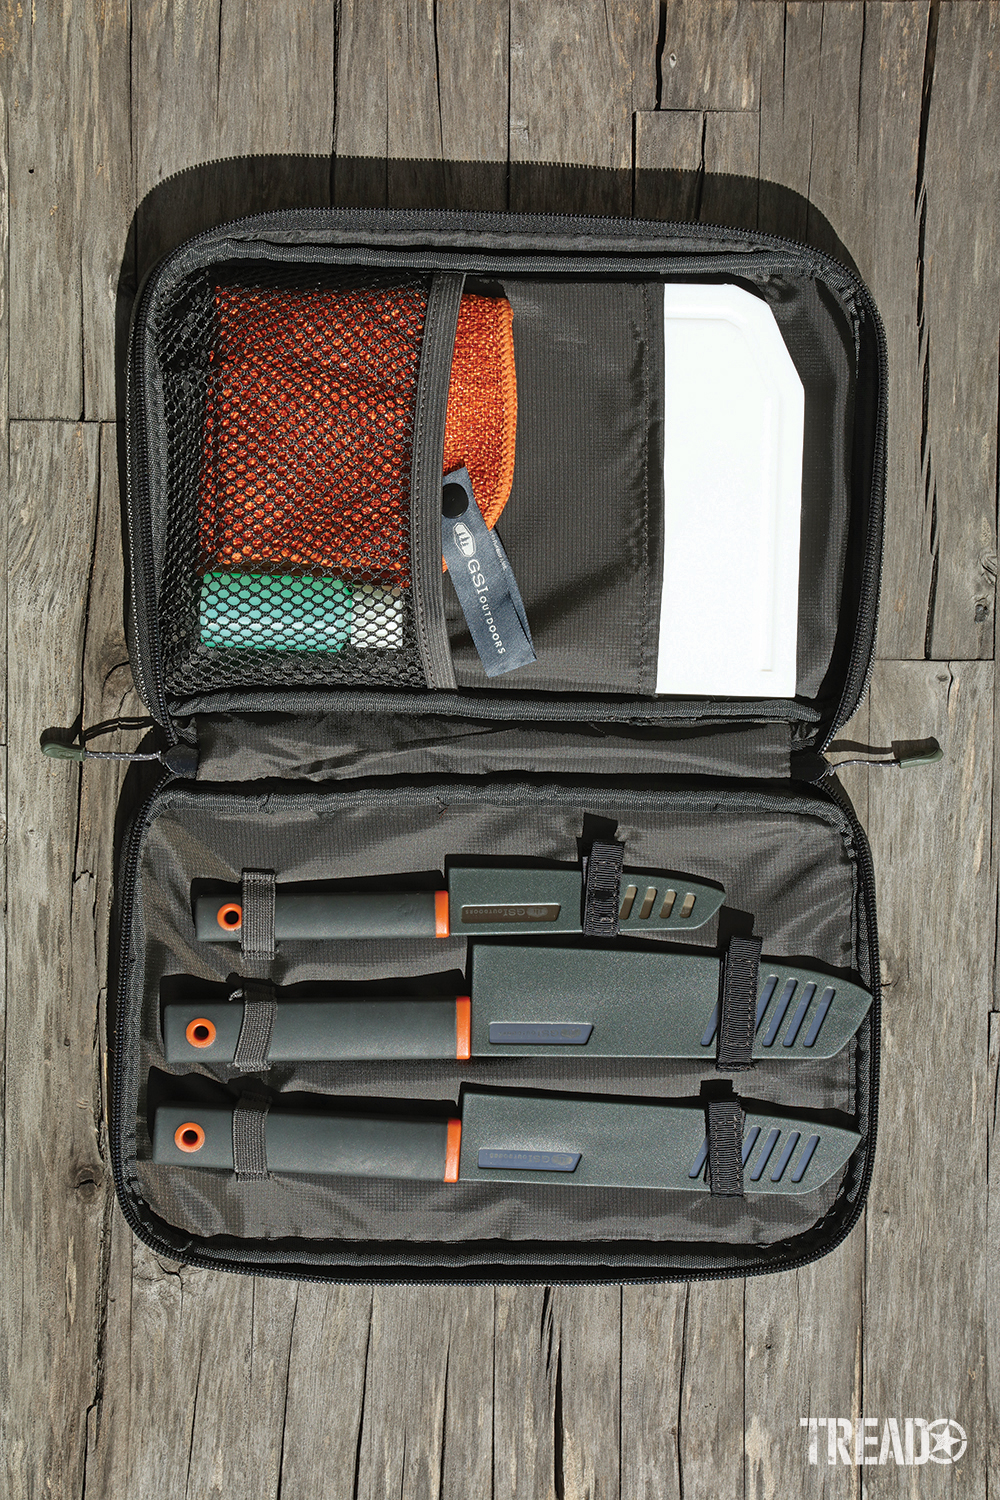 Each dark gray knife and items stow neatly in the GSI Santoku Knife Set zippered carry bag.